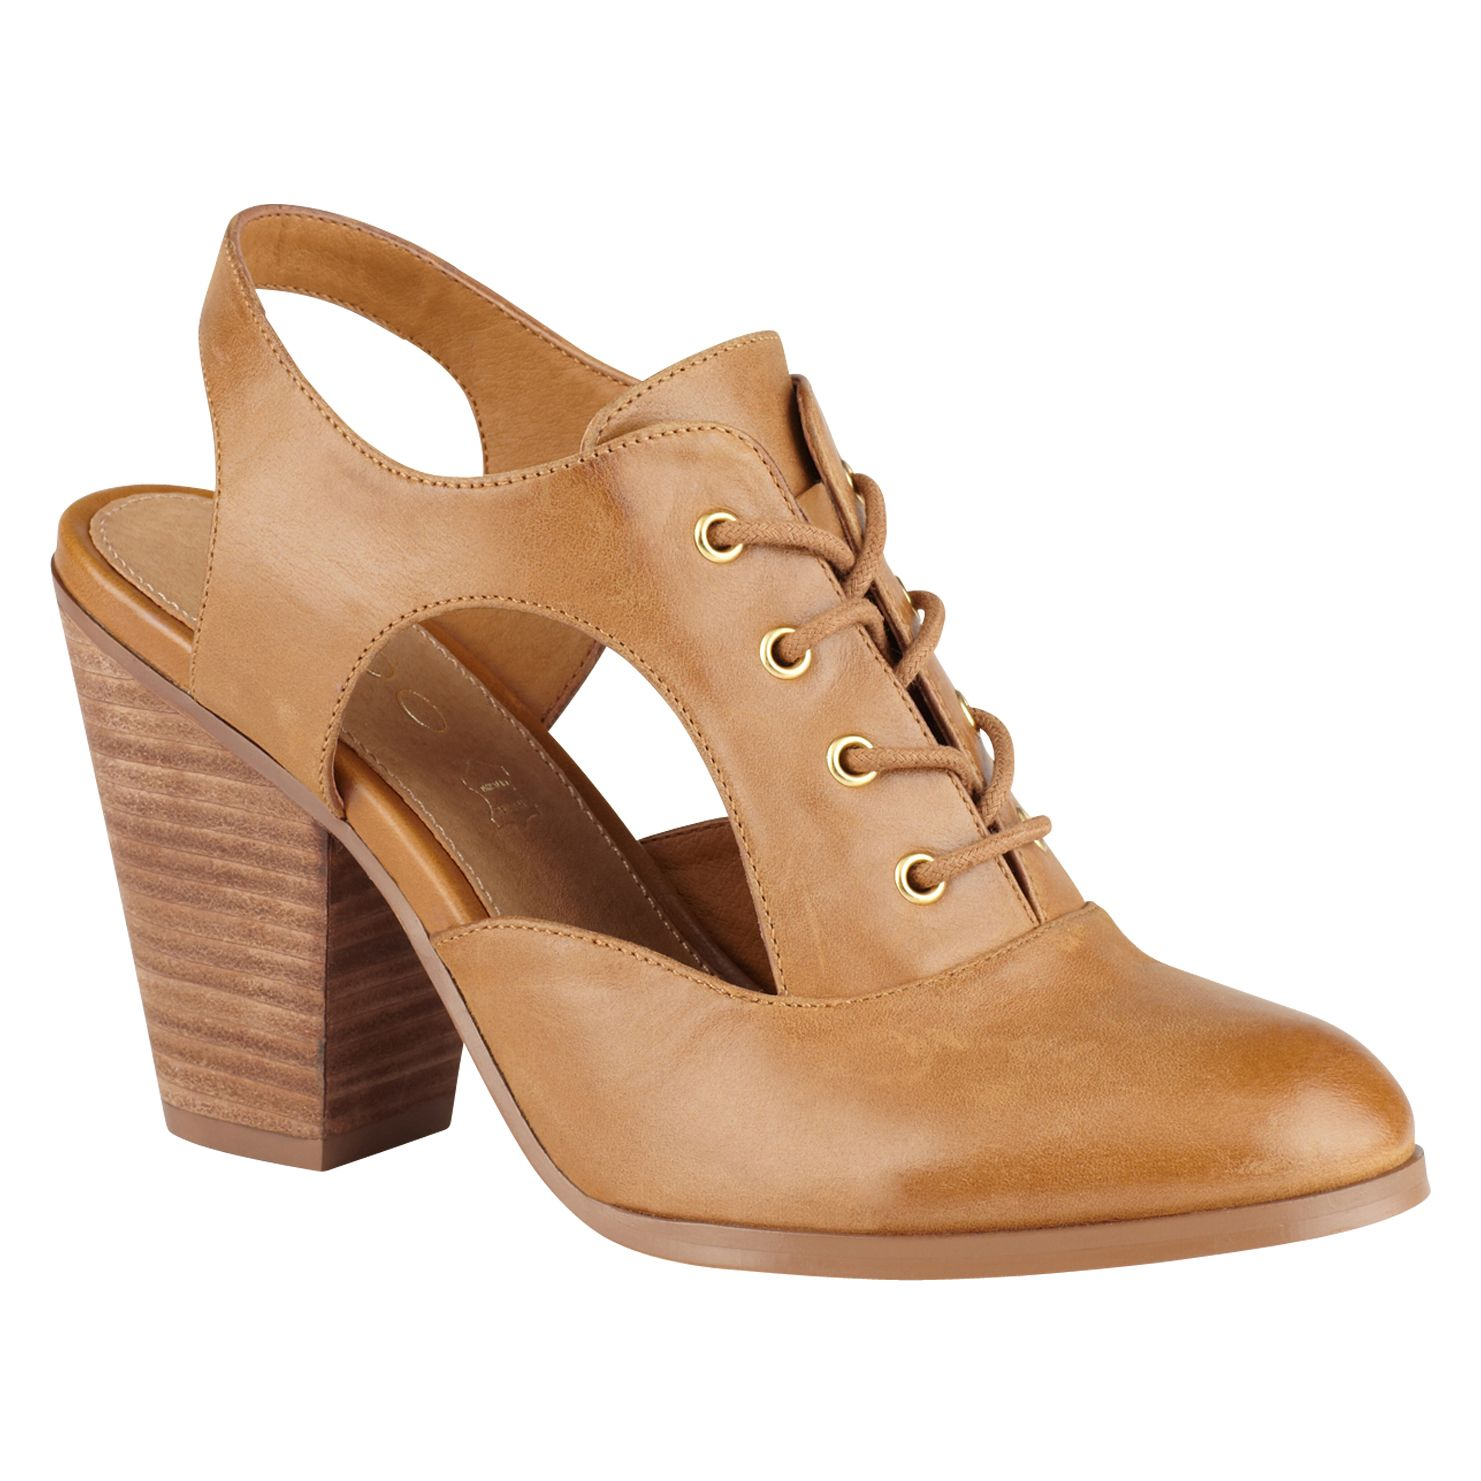 Thiraria lace up cut out block heel shoes